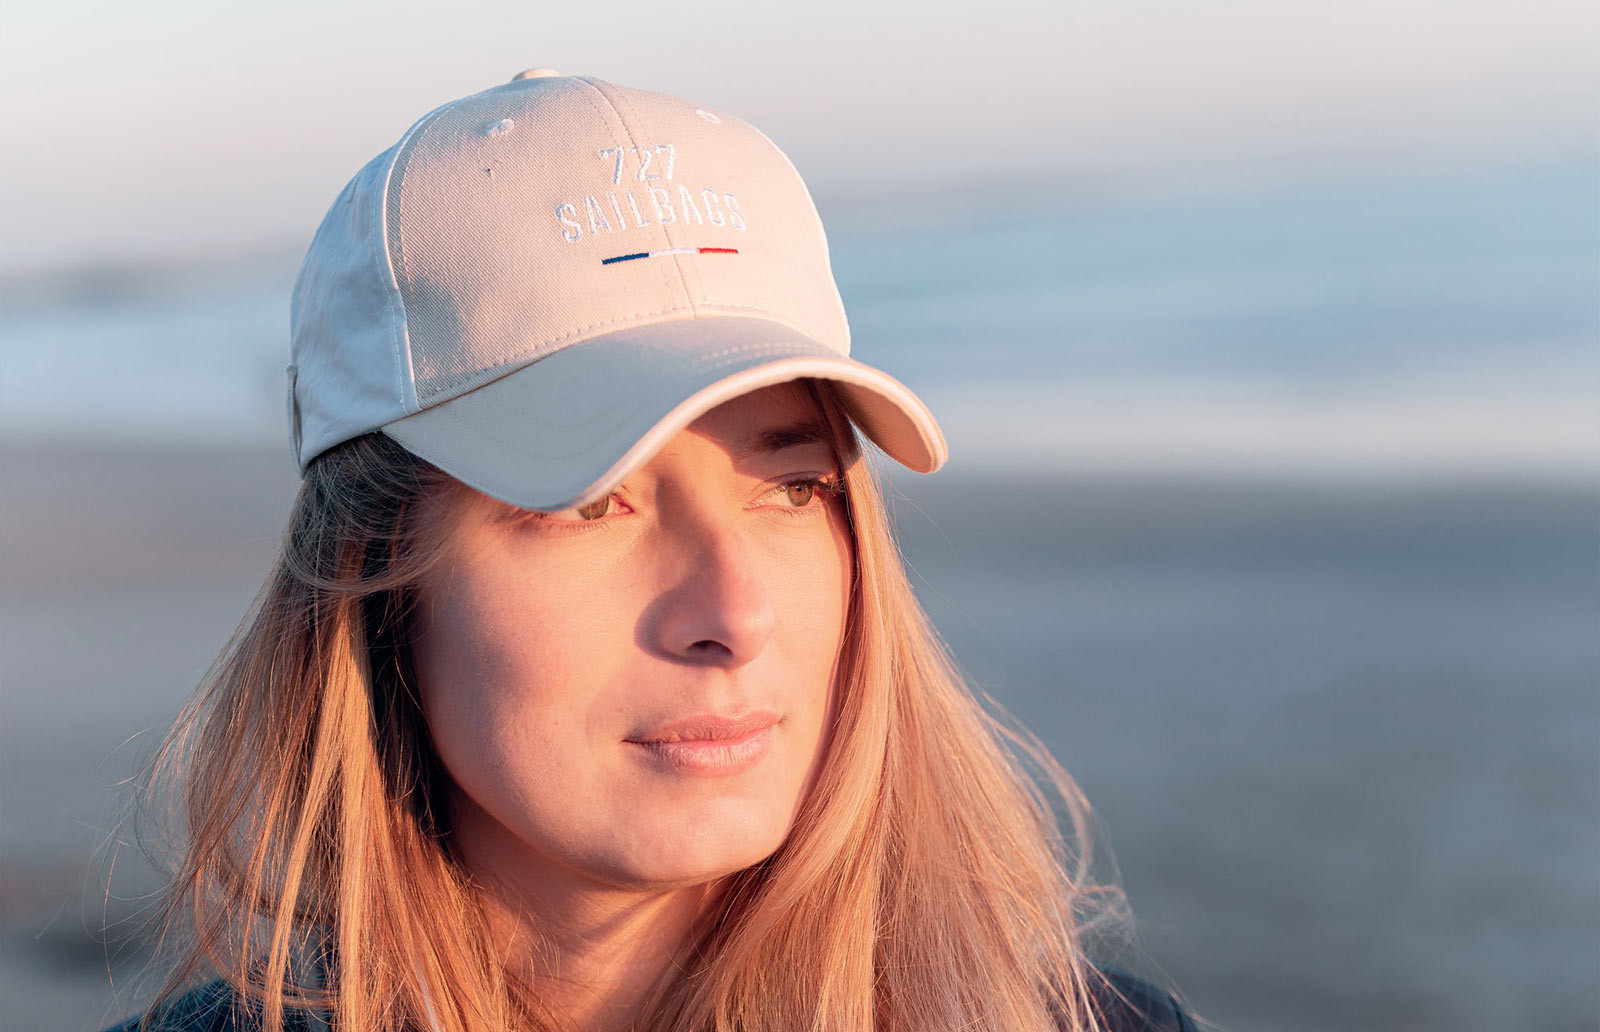 100% recycled sailcloth caps